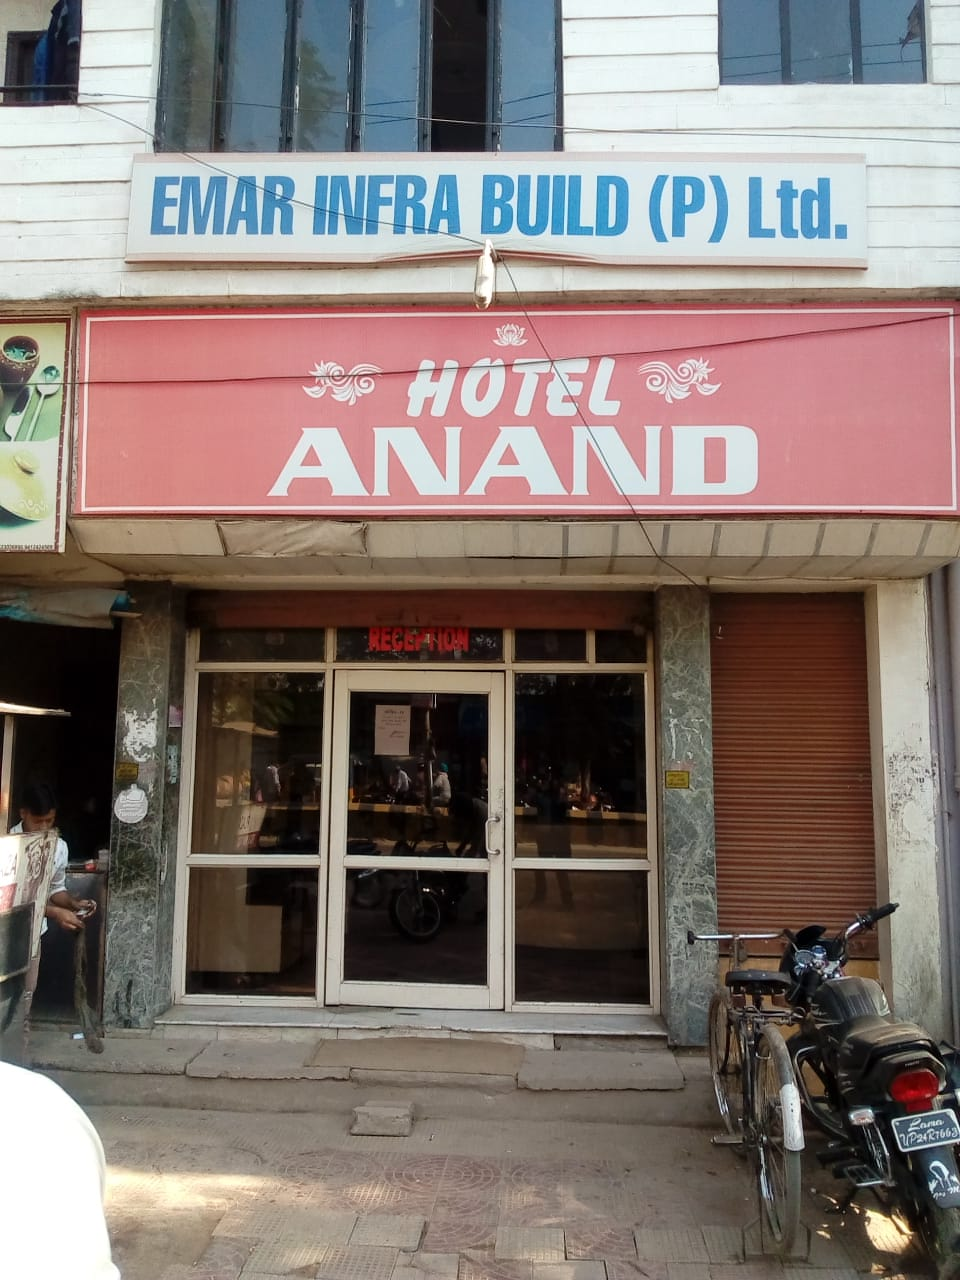 (Hotel Anand)